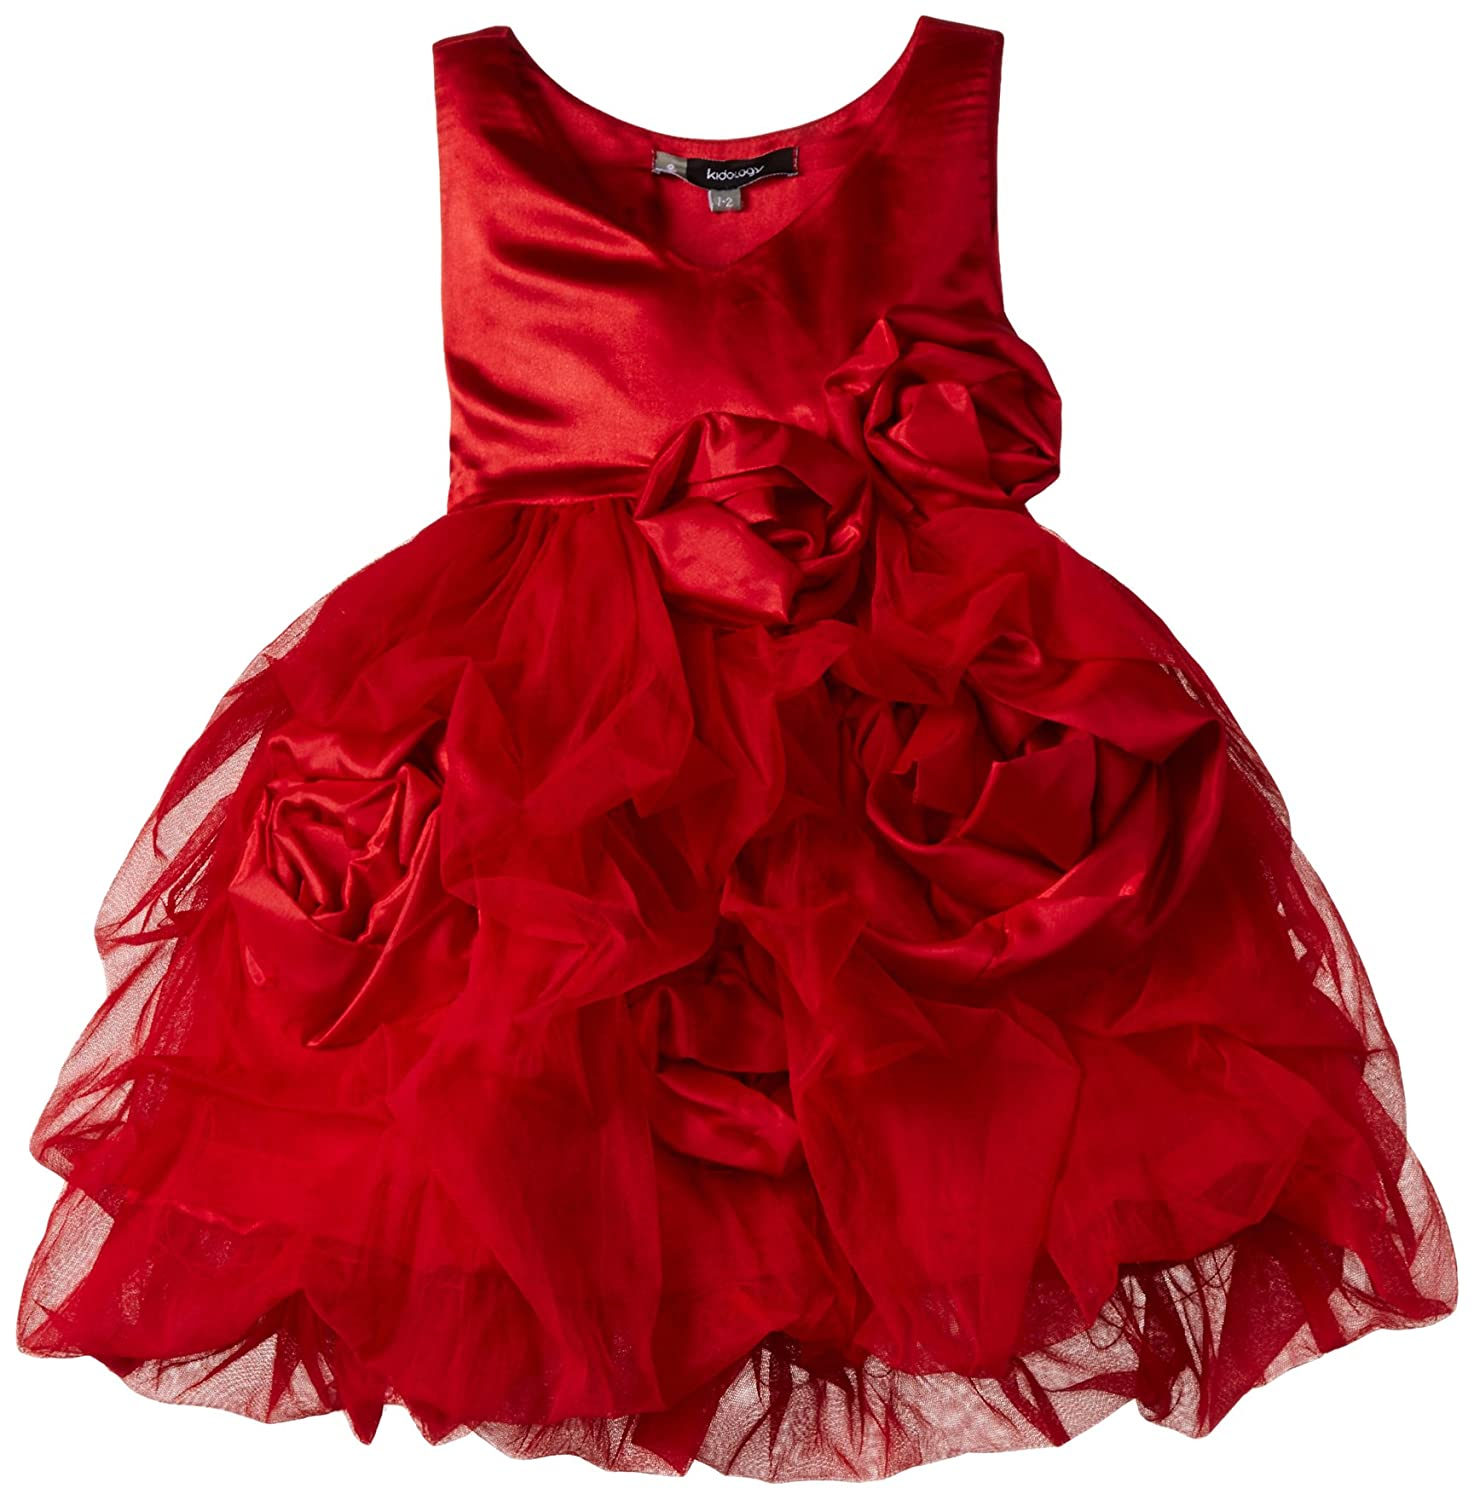 Buy Baby Girls Party Dresses line At Rs 299 Lowest Price